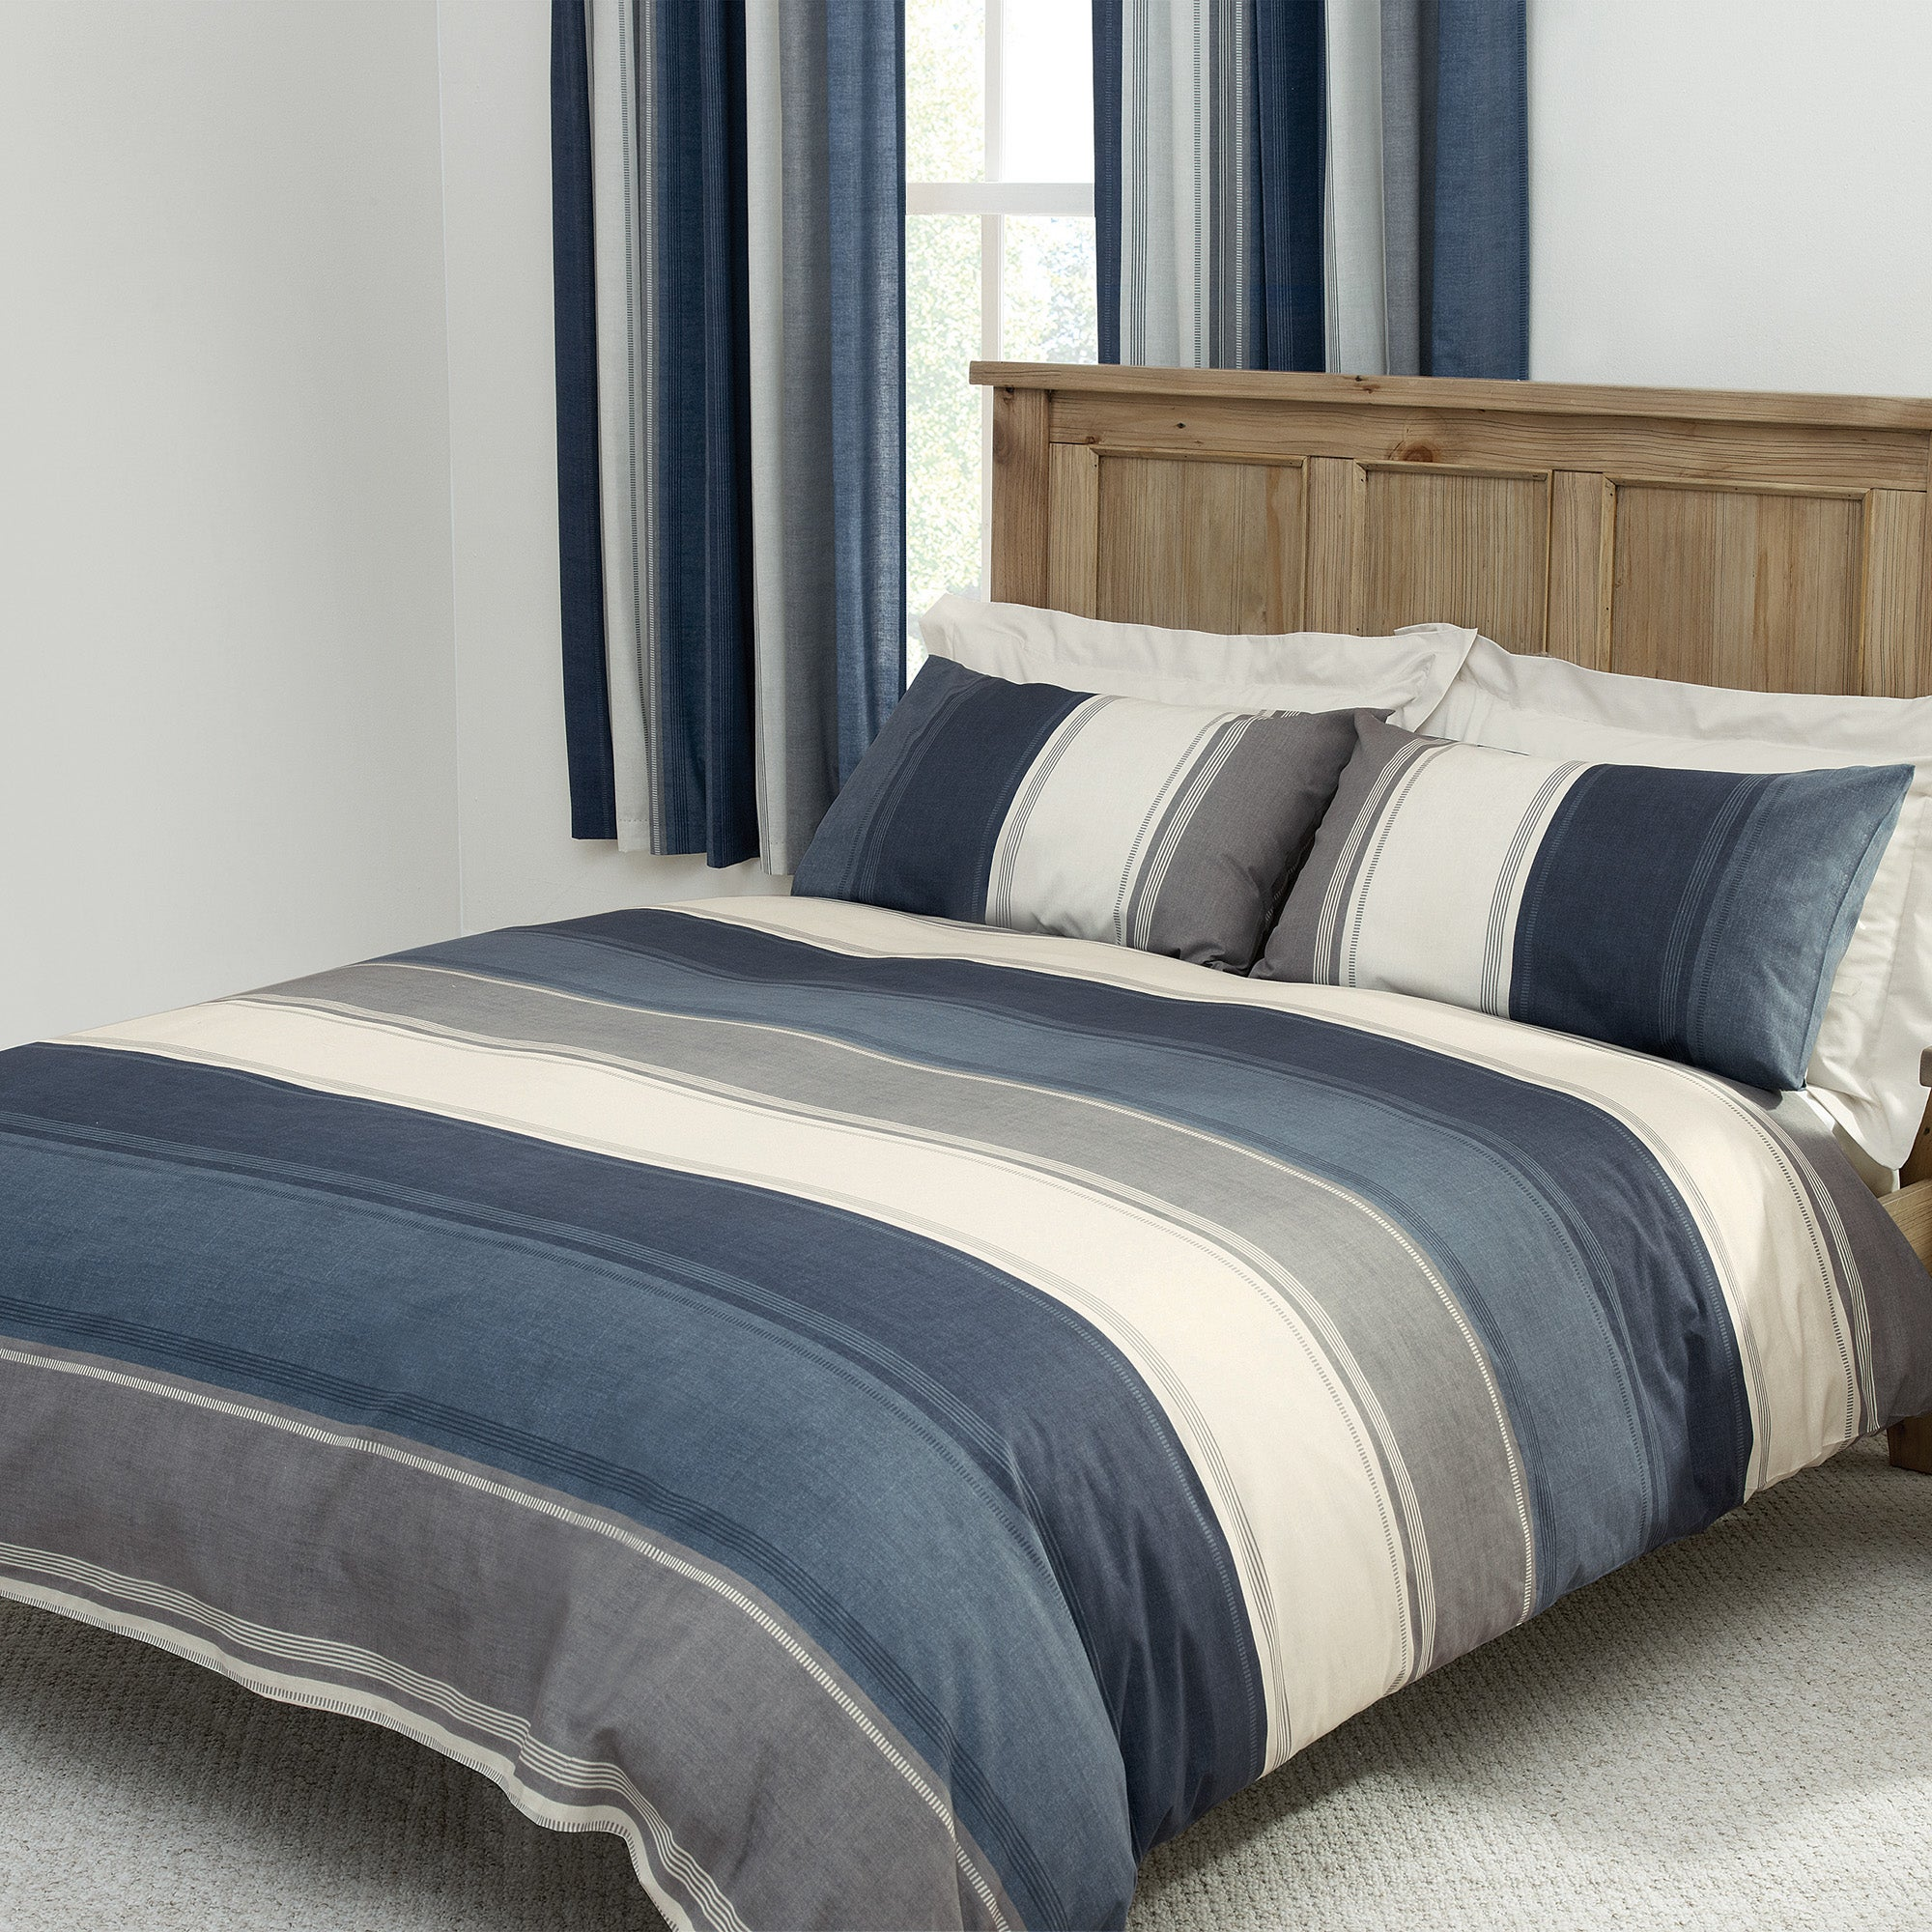 Finley Blue Bed Linen Collection